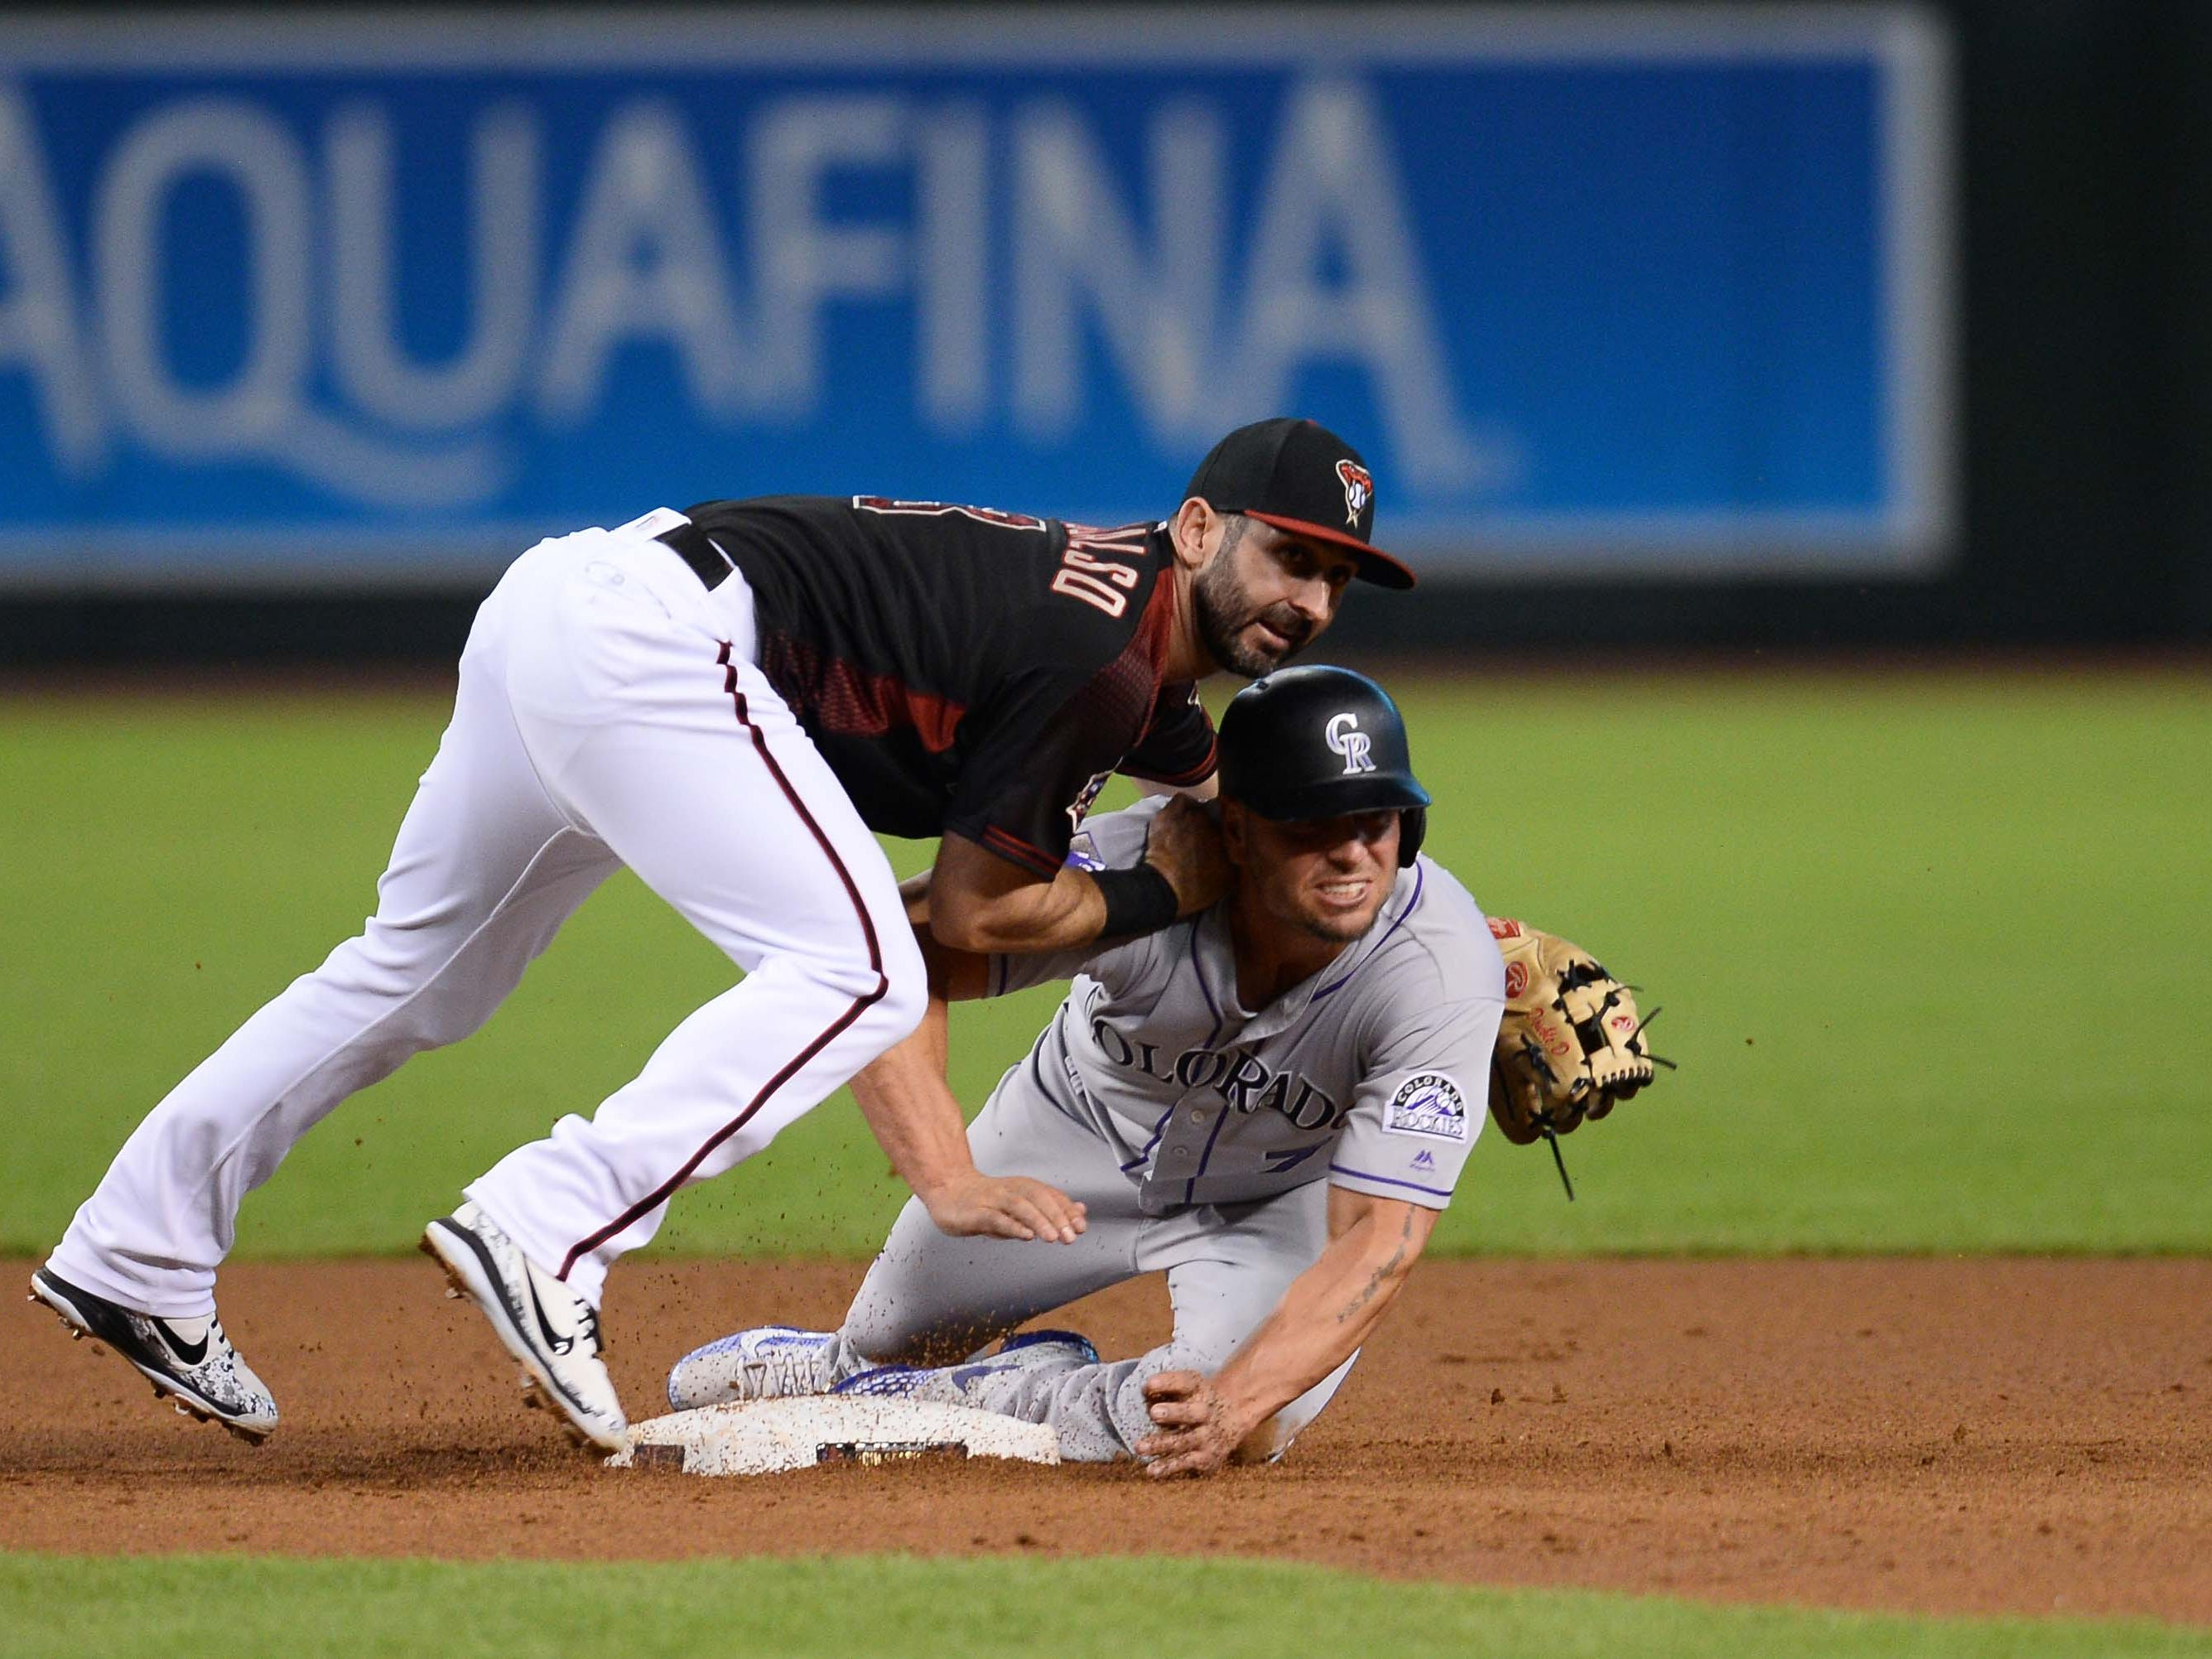 Sep 22, 2018; Phoenix, AZ, USA; Arizona Diamondbacks third baseman Daniel Descalso (3) and Colorado Rockies left fielder Matt Holliday (7) look as Descalso completes a double play during the first inning at Chase Field.